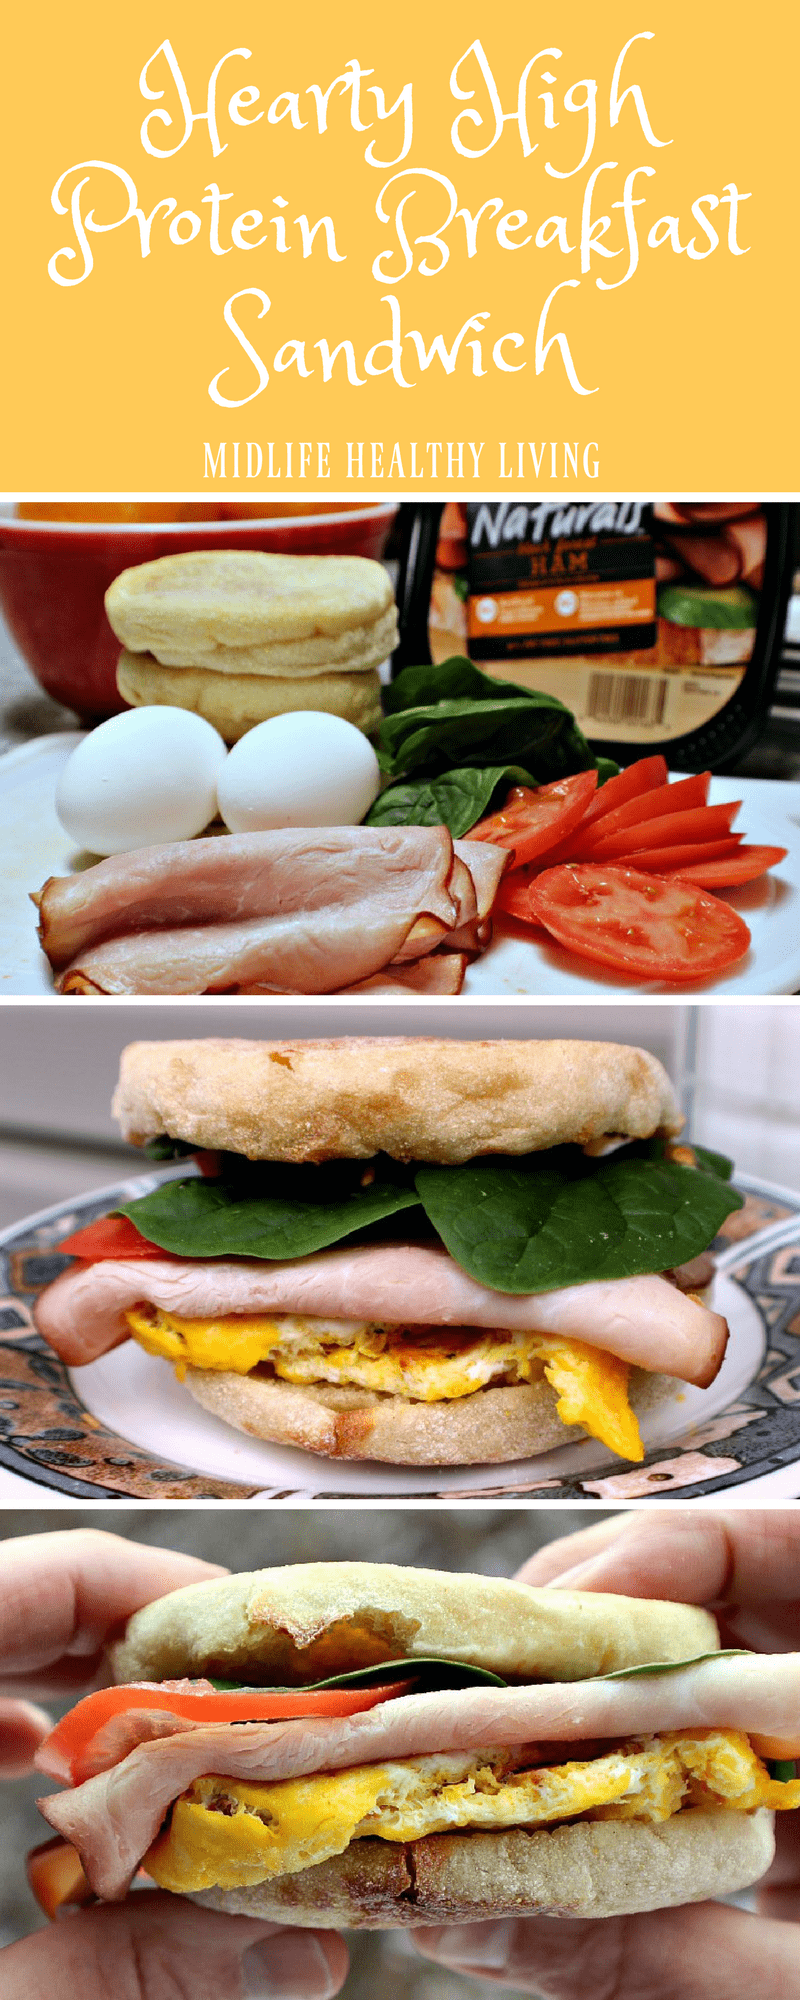 This Hearty High Protein Breakfast Sandwich can be prepared in advance and refrigerated or frozen until you want to eat one. When your on your way out the door in the morning, heat one up, add your toppings and your ready to start the day out on the right foot. #WeightWatchers #breakfast #Freestyle #WWrecipes #eggrecipes #highprotein